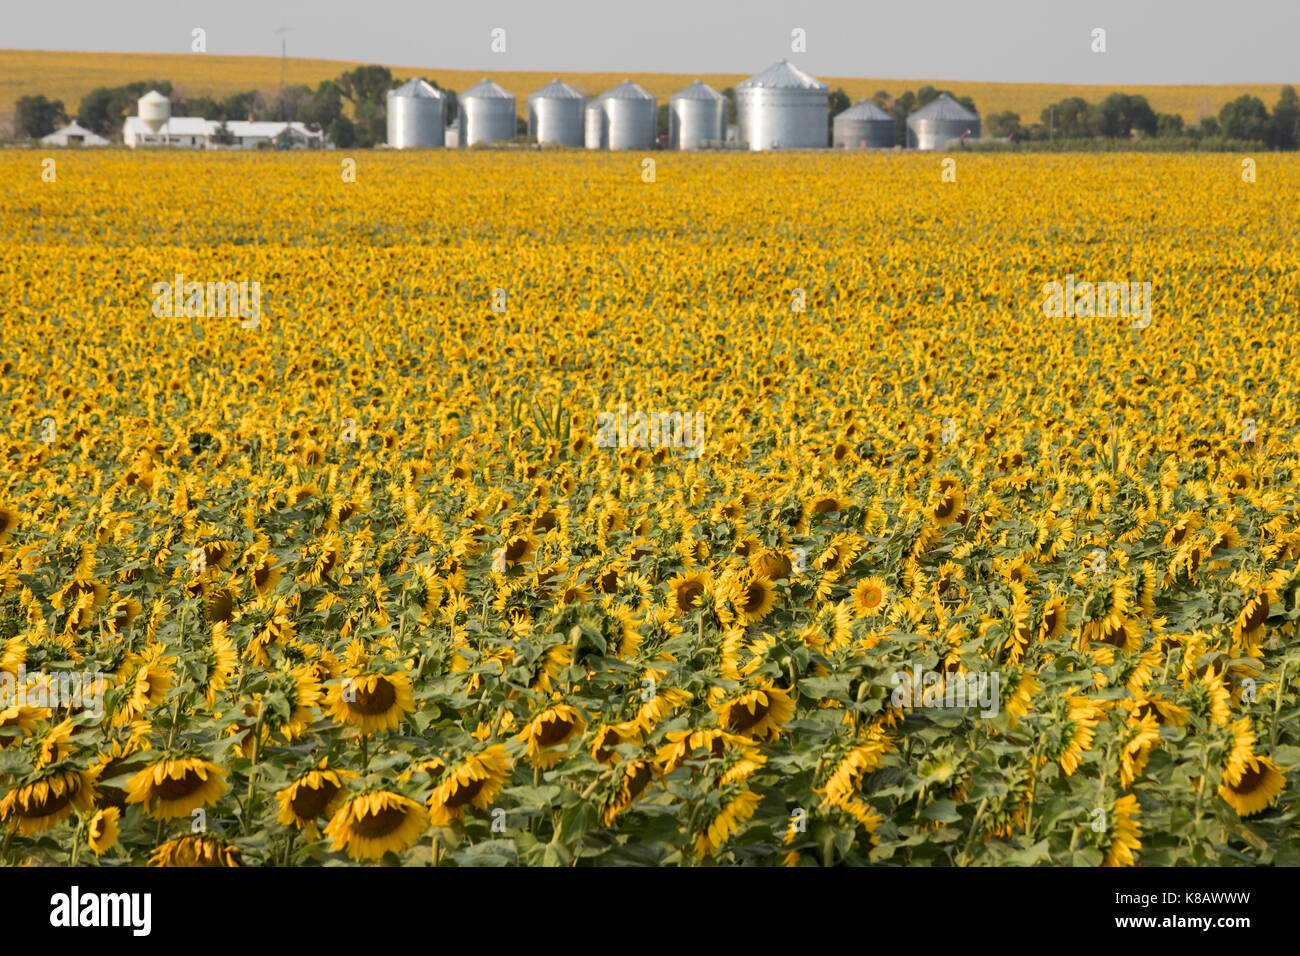 Pine Ridge, South Dakota - Sunflowers growing on a farm on the Pine Ridge Indian Reservation. - Stock Image